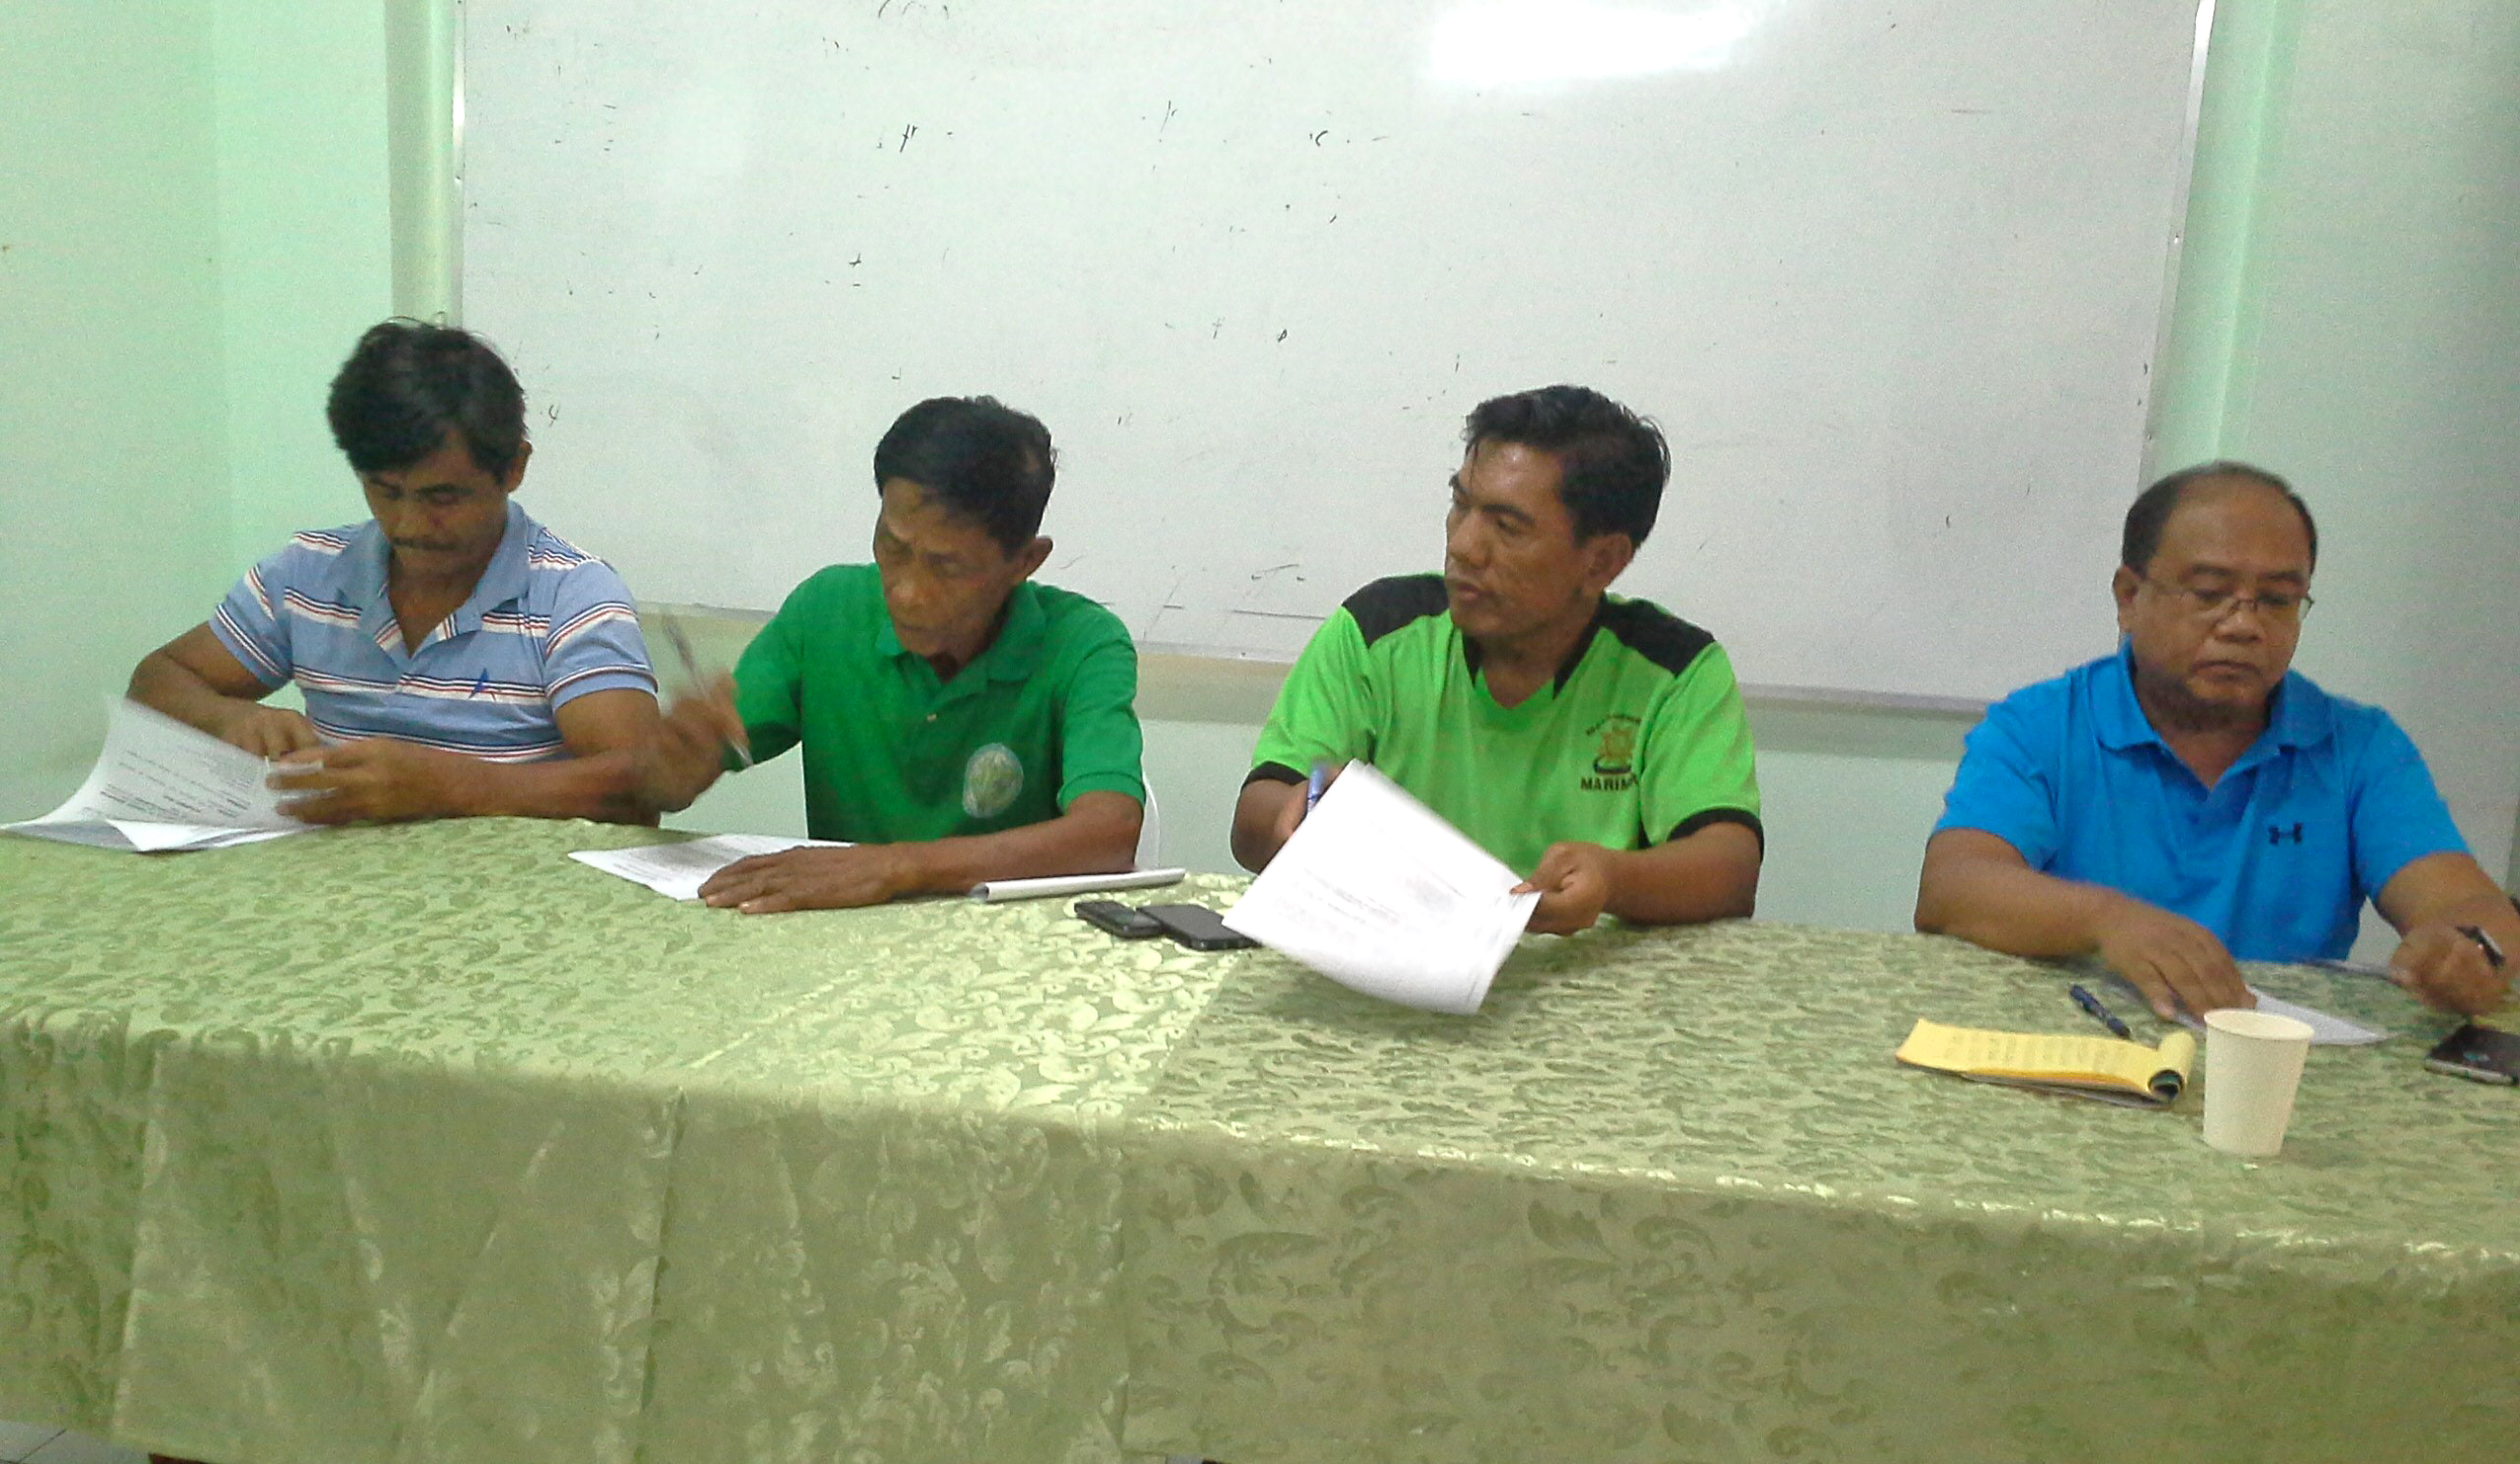 Members of the Tripartite Committee sign the MOA on the operation and maintenance of the Hapid Irrigation System. (from left to right) SB Napoleon Belingon, Committee on Agriculture of LGU Lamut; Mr. Salvador Balmores.Wagufi Fed. Pres.; Atty. Mariano Buyagawan, Jr.-Municipal Mayor  and Engr. Benito Espique, Jr., Acting Regionl Manager NIA-CAR